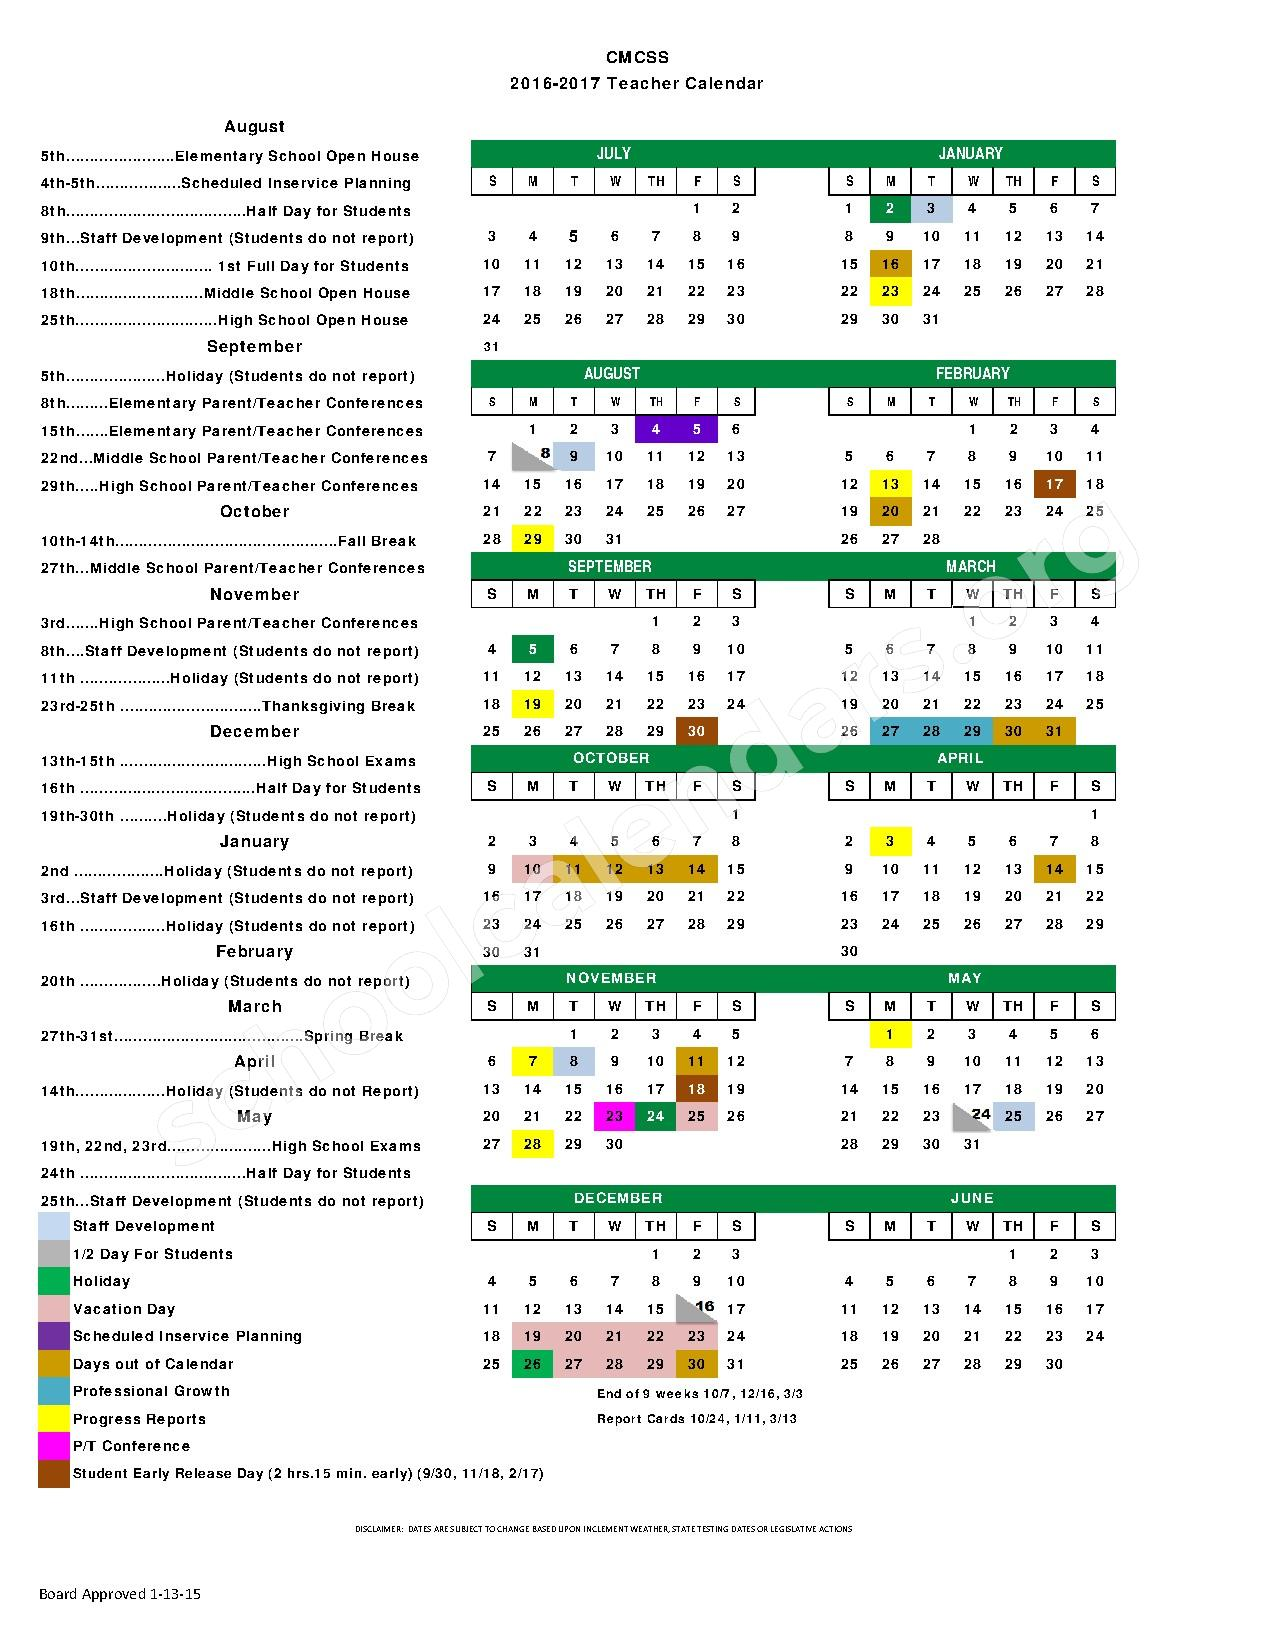 2016 - 2017 Teacher Calendar – Northwest High School – page 1